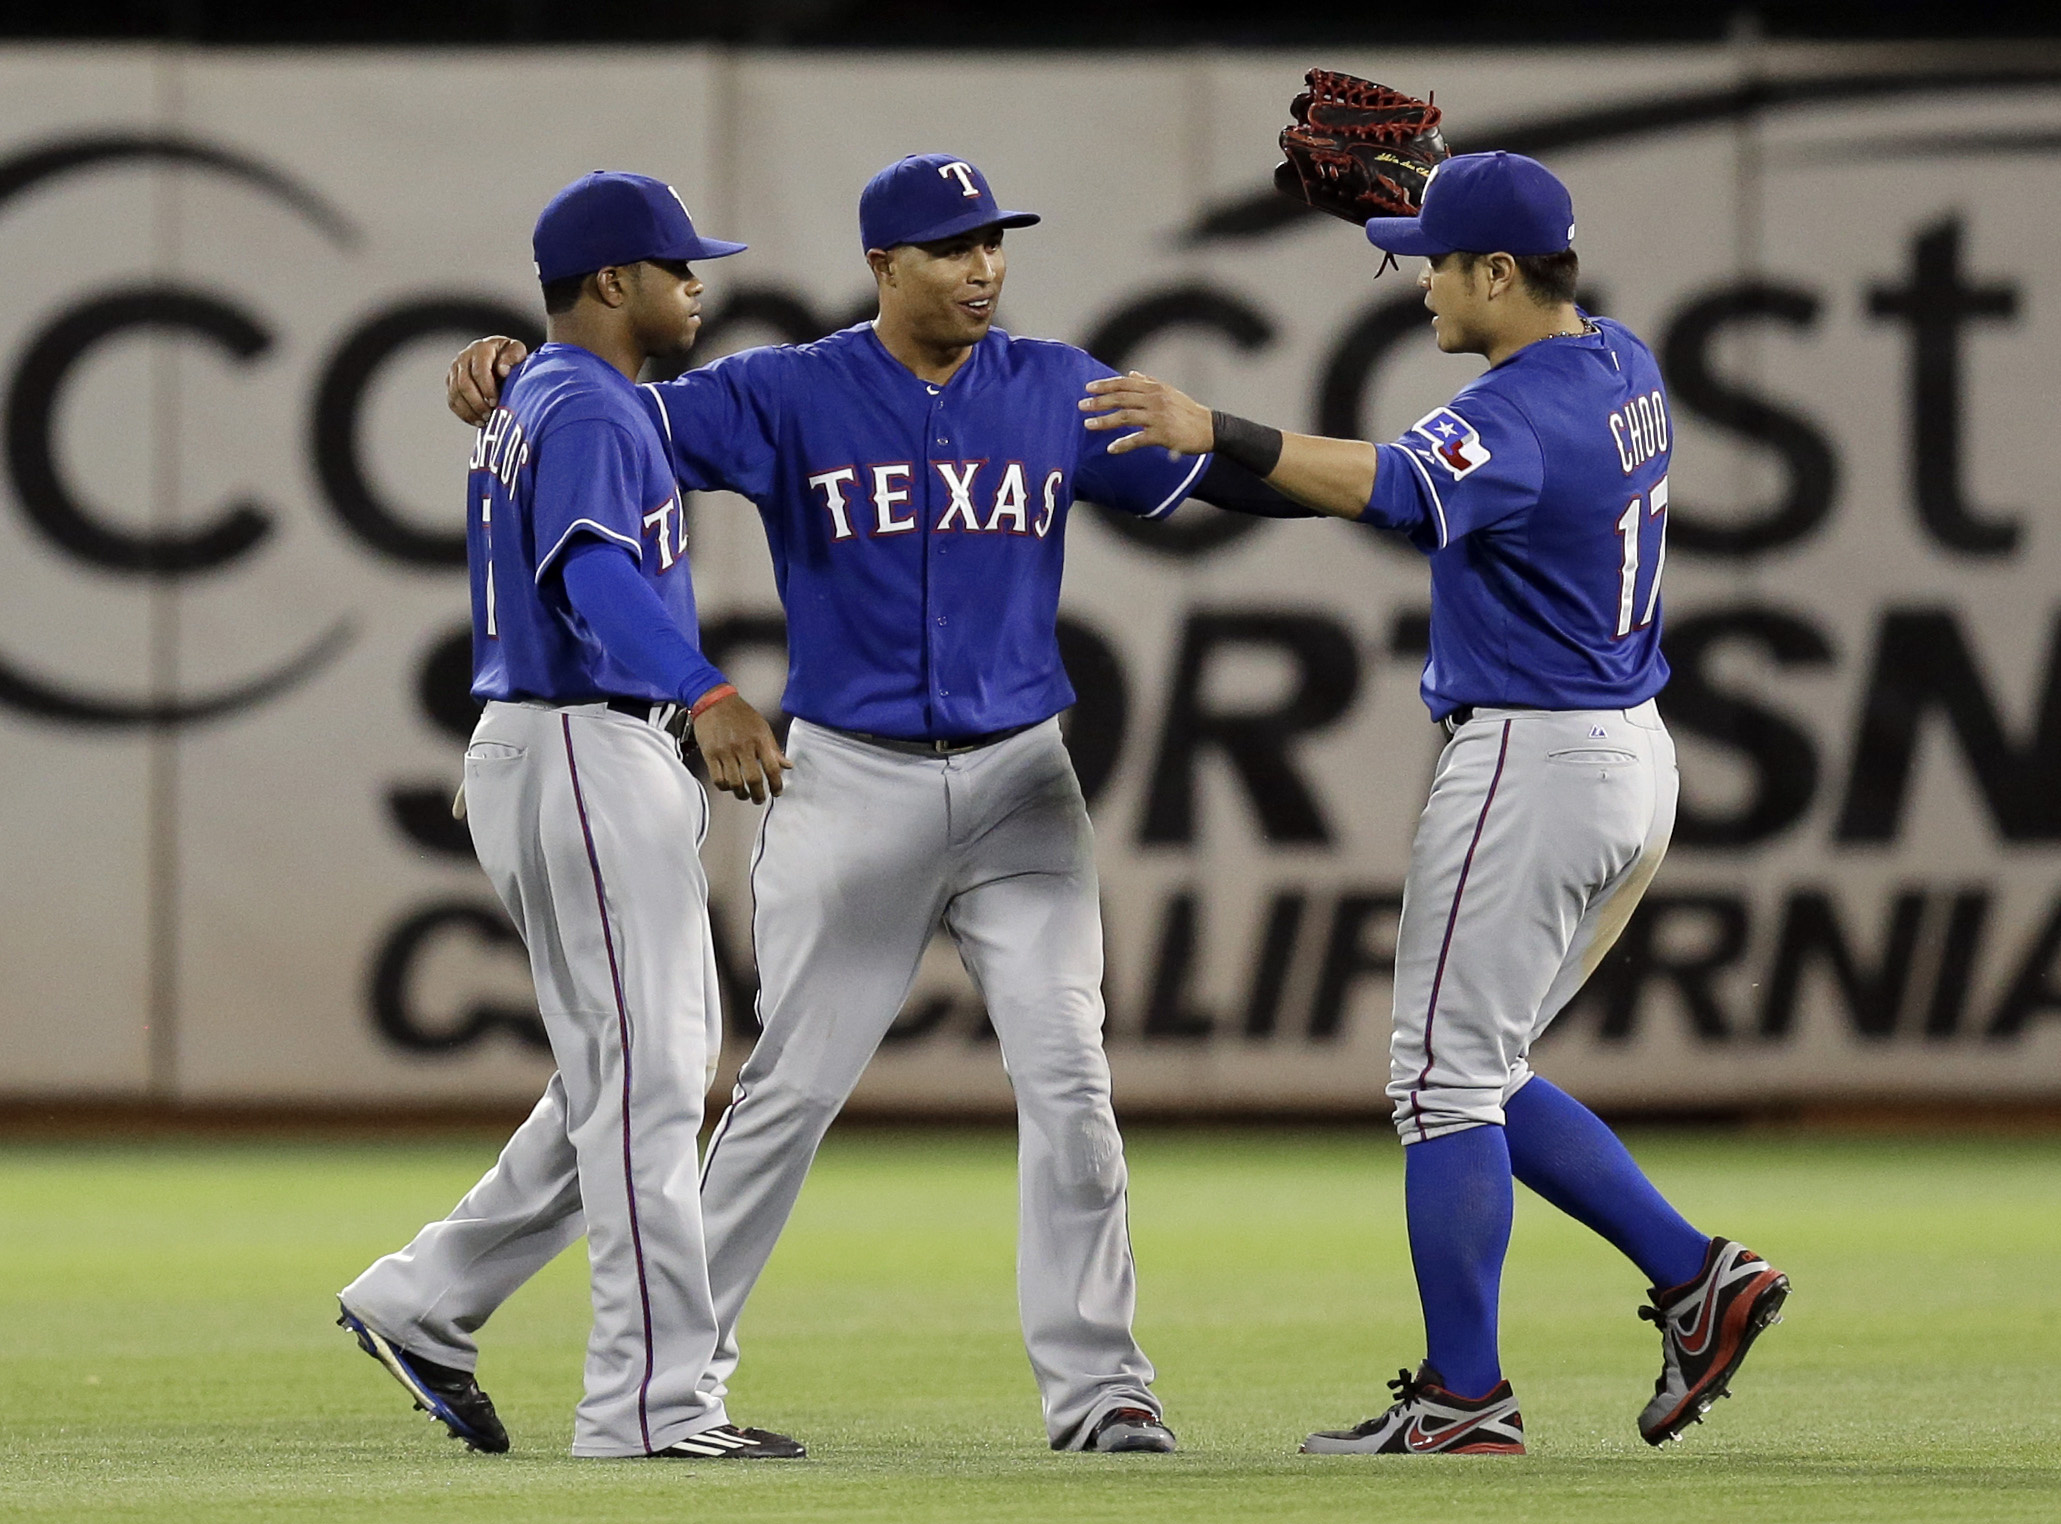 From left, Texas Rangers' Delino DeShields, Leonys Martin and Shin-Soo Choo celebrate defeating the Oakland Athletics 2-1 at the end of a baseball game Tuesday, June 9, 2015, in Oakland, Calif. (AP Photo/Ben Margot)